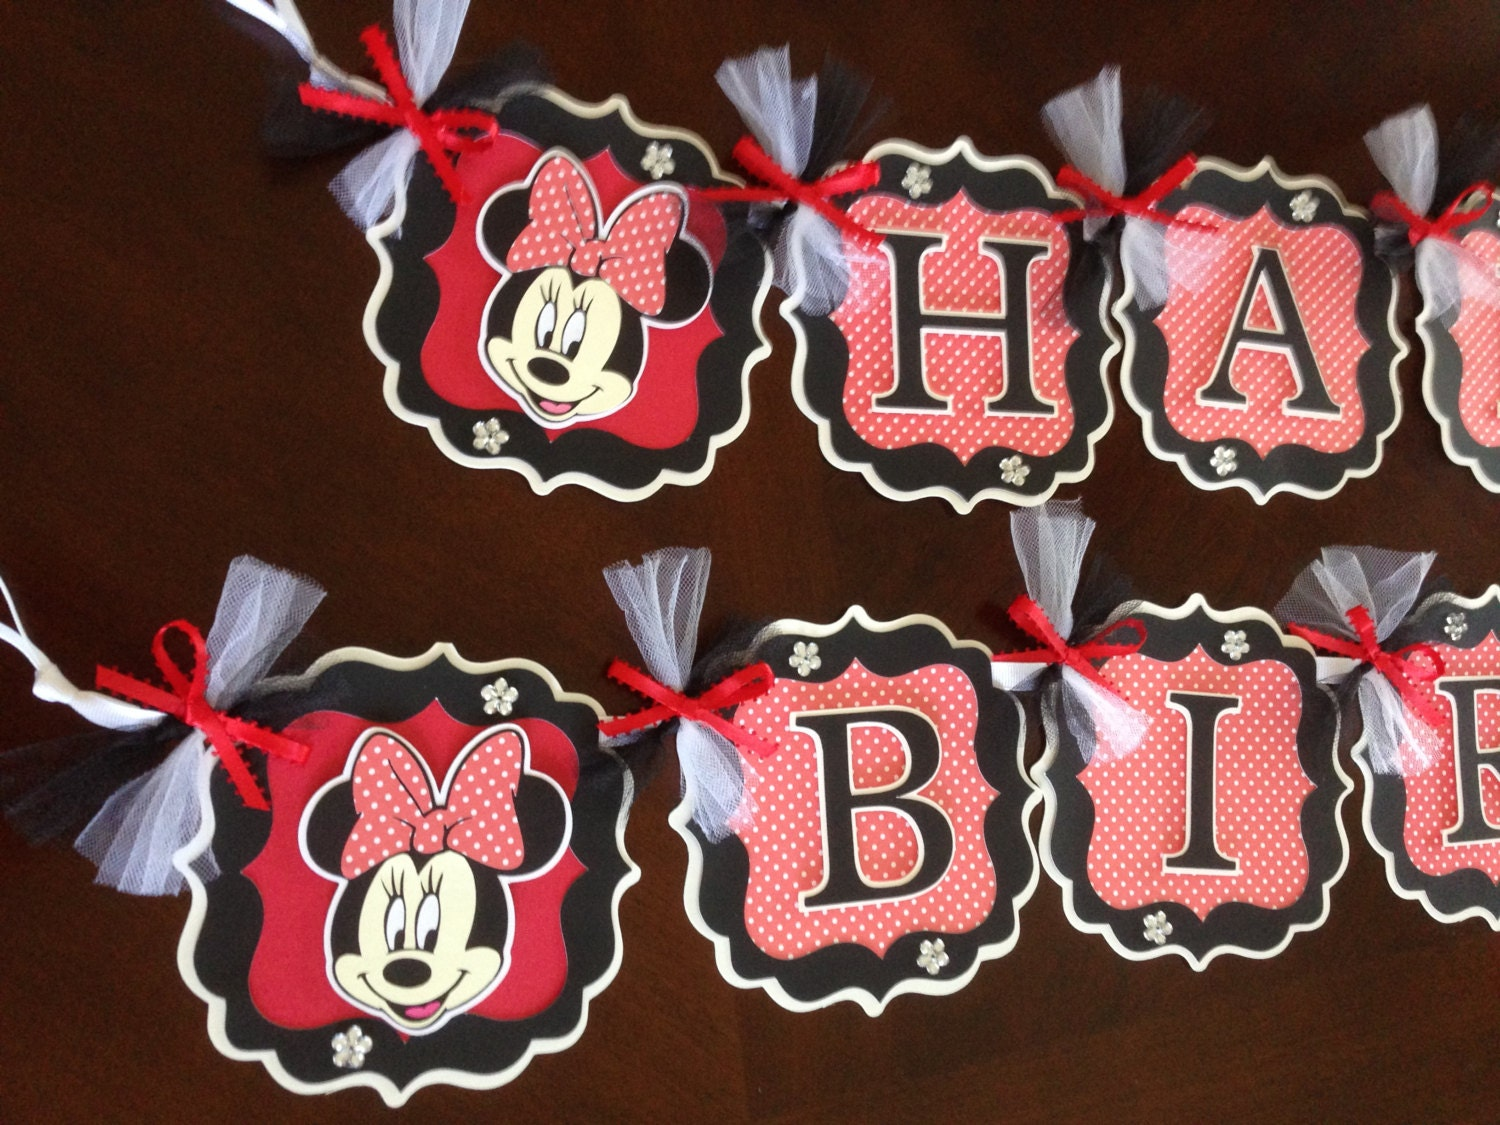 Minnie Mouse Party Decorations RedBlackWhite Minnie Mouse